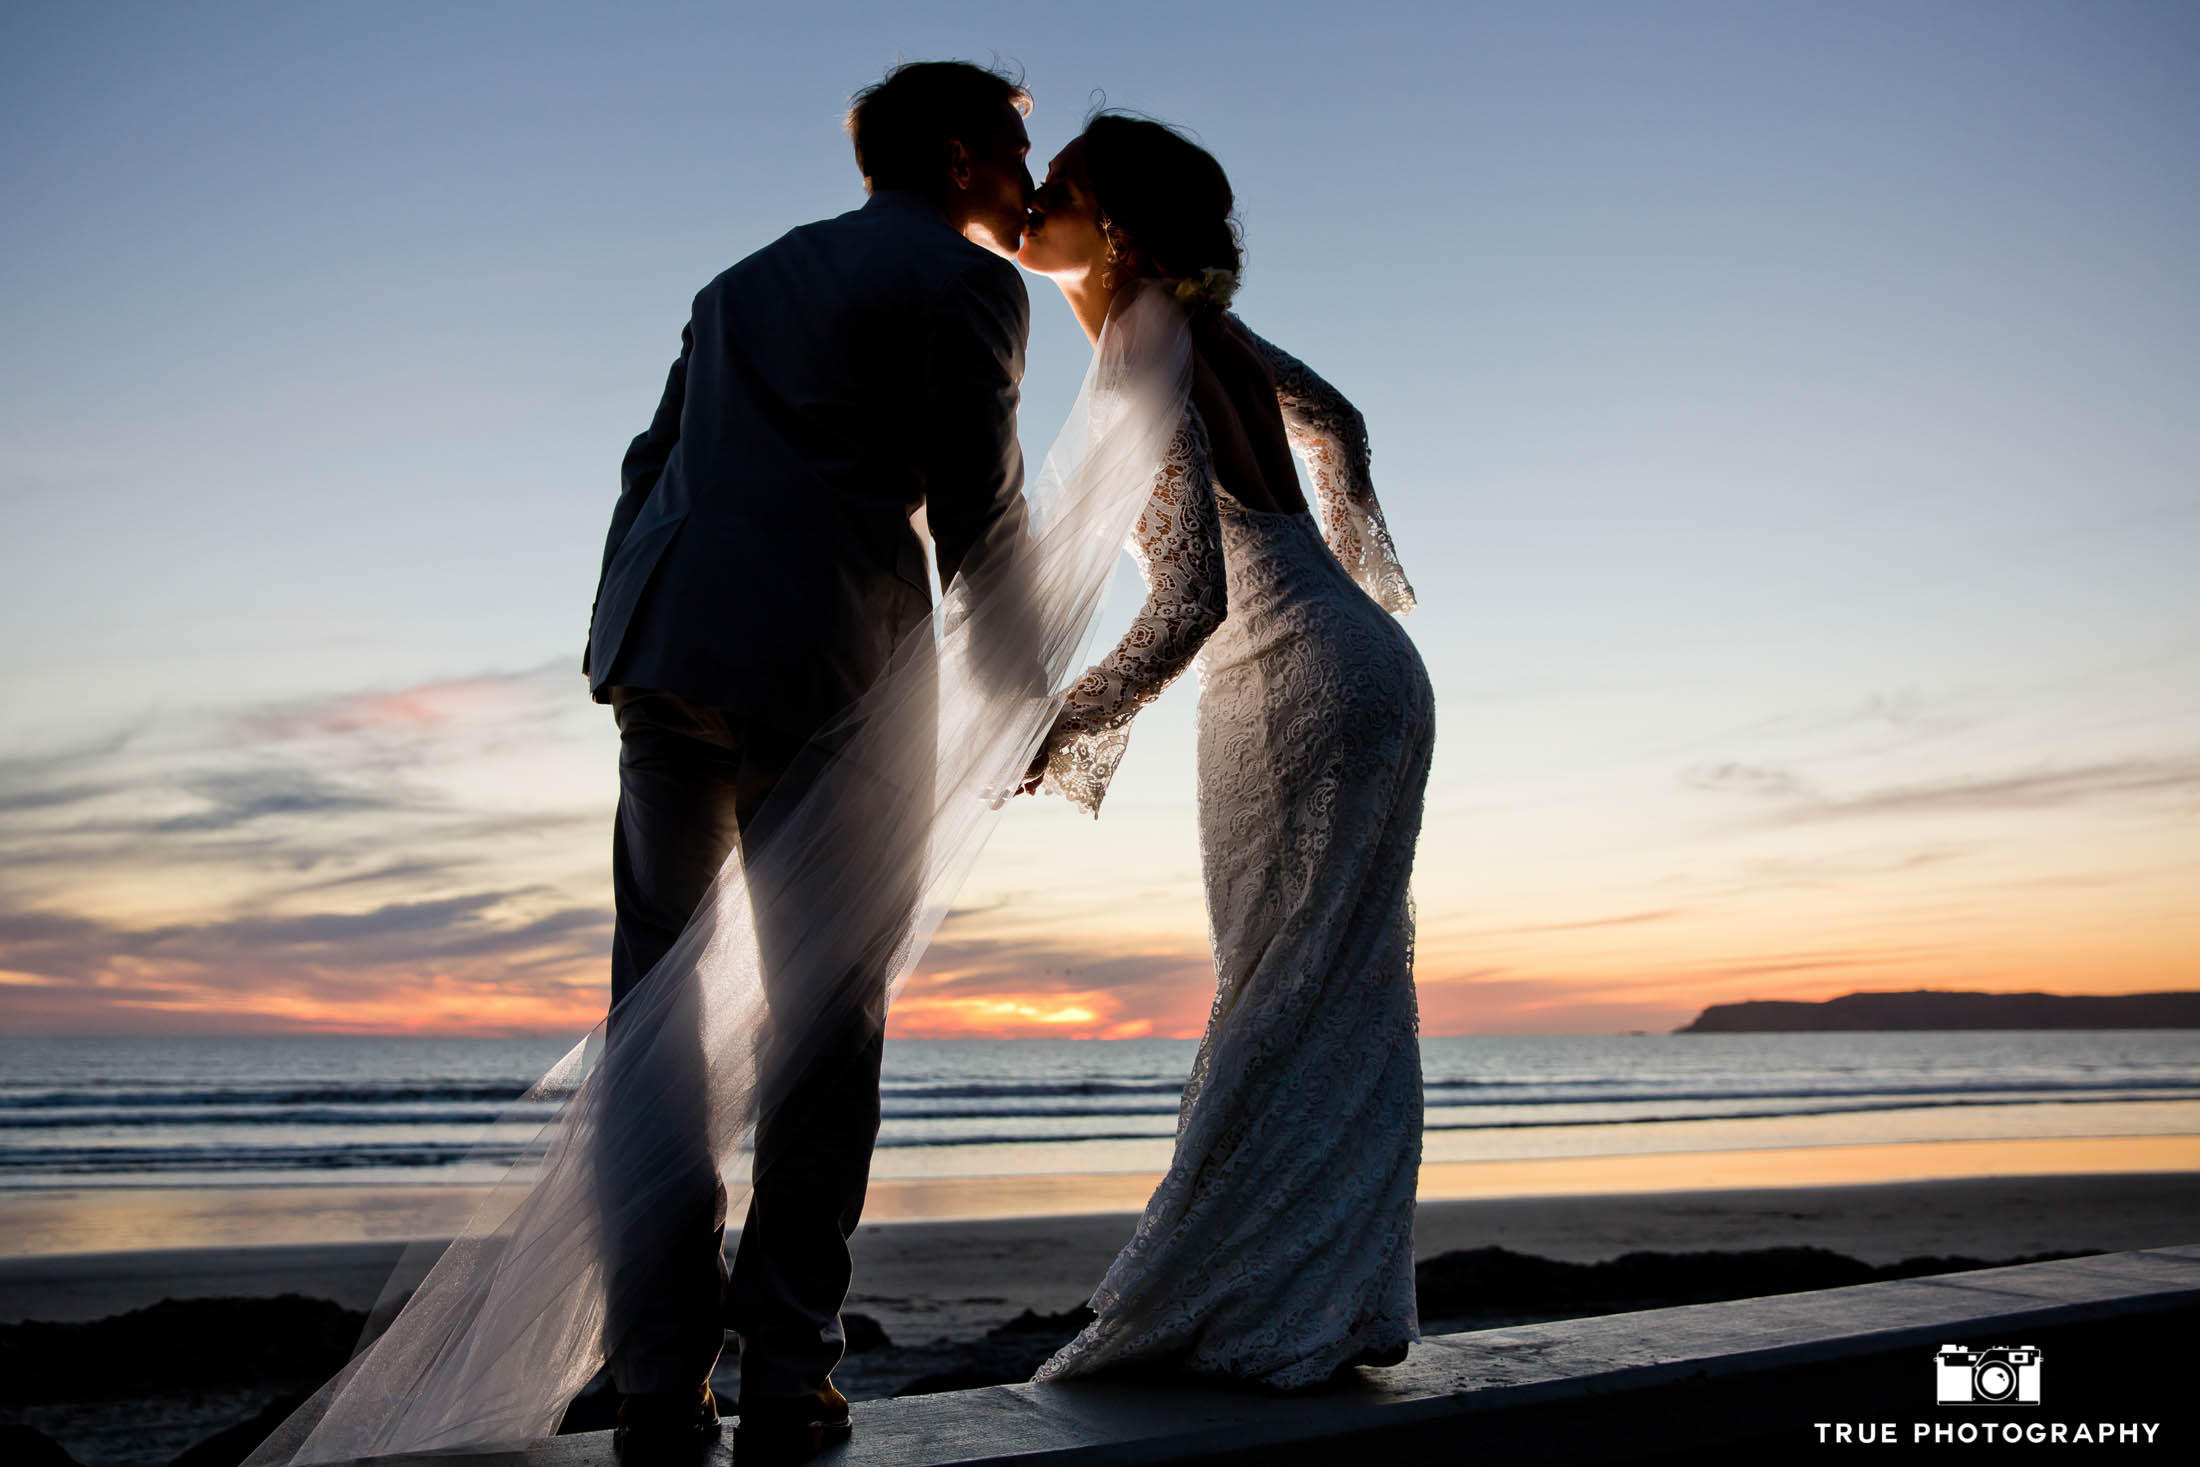 Coronado beach sunset portrait of bride and groom